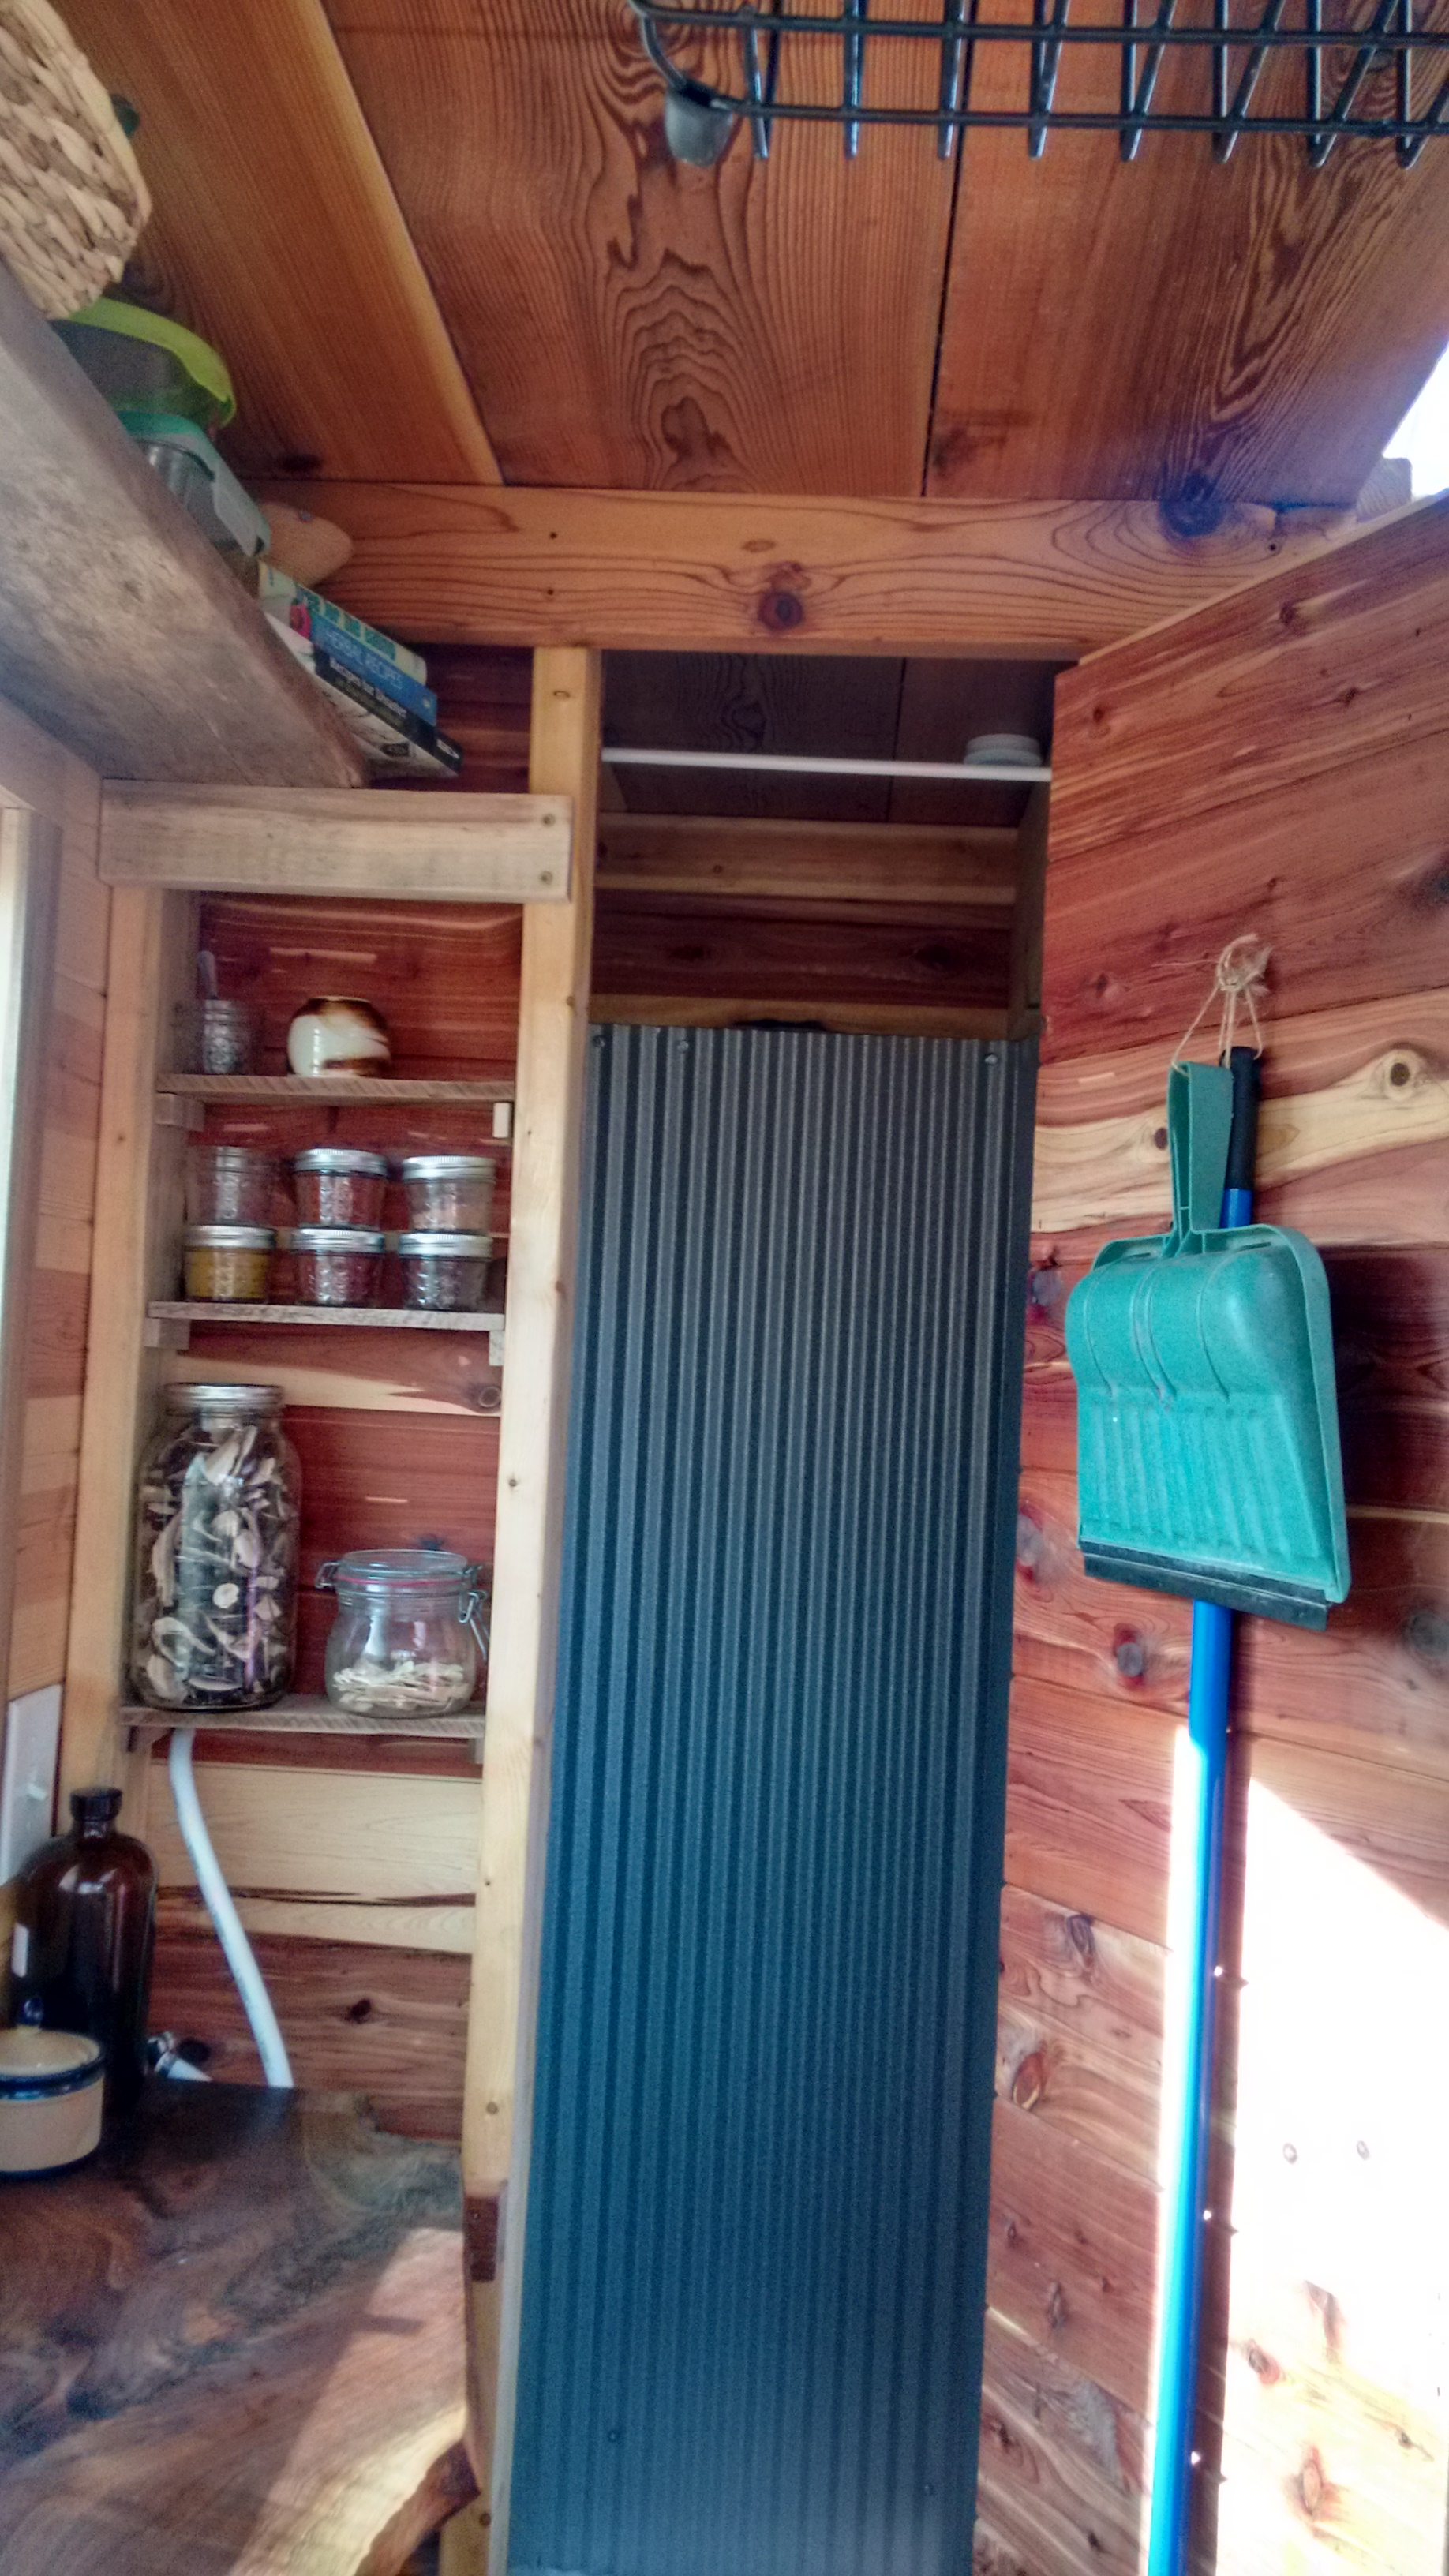 Woolly Resistance - Kitchen shelves and shower door